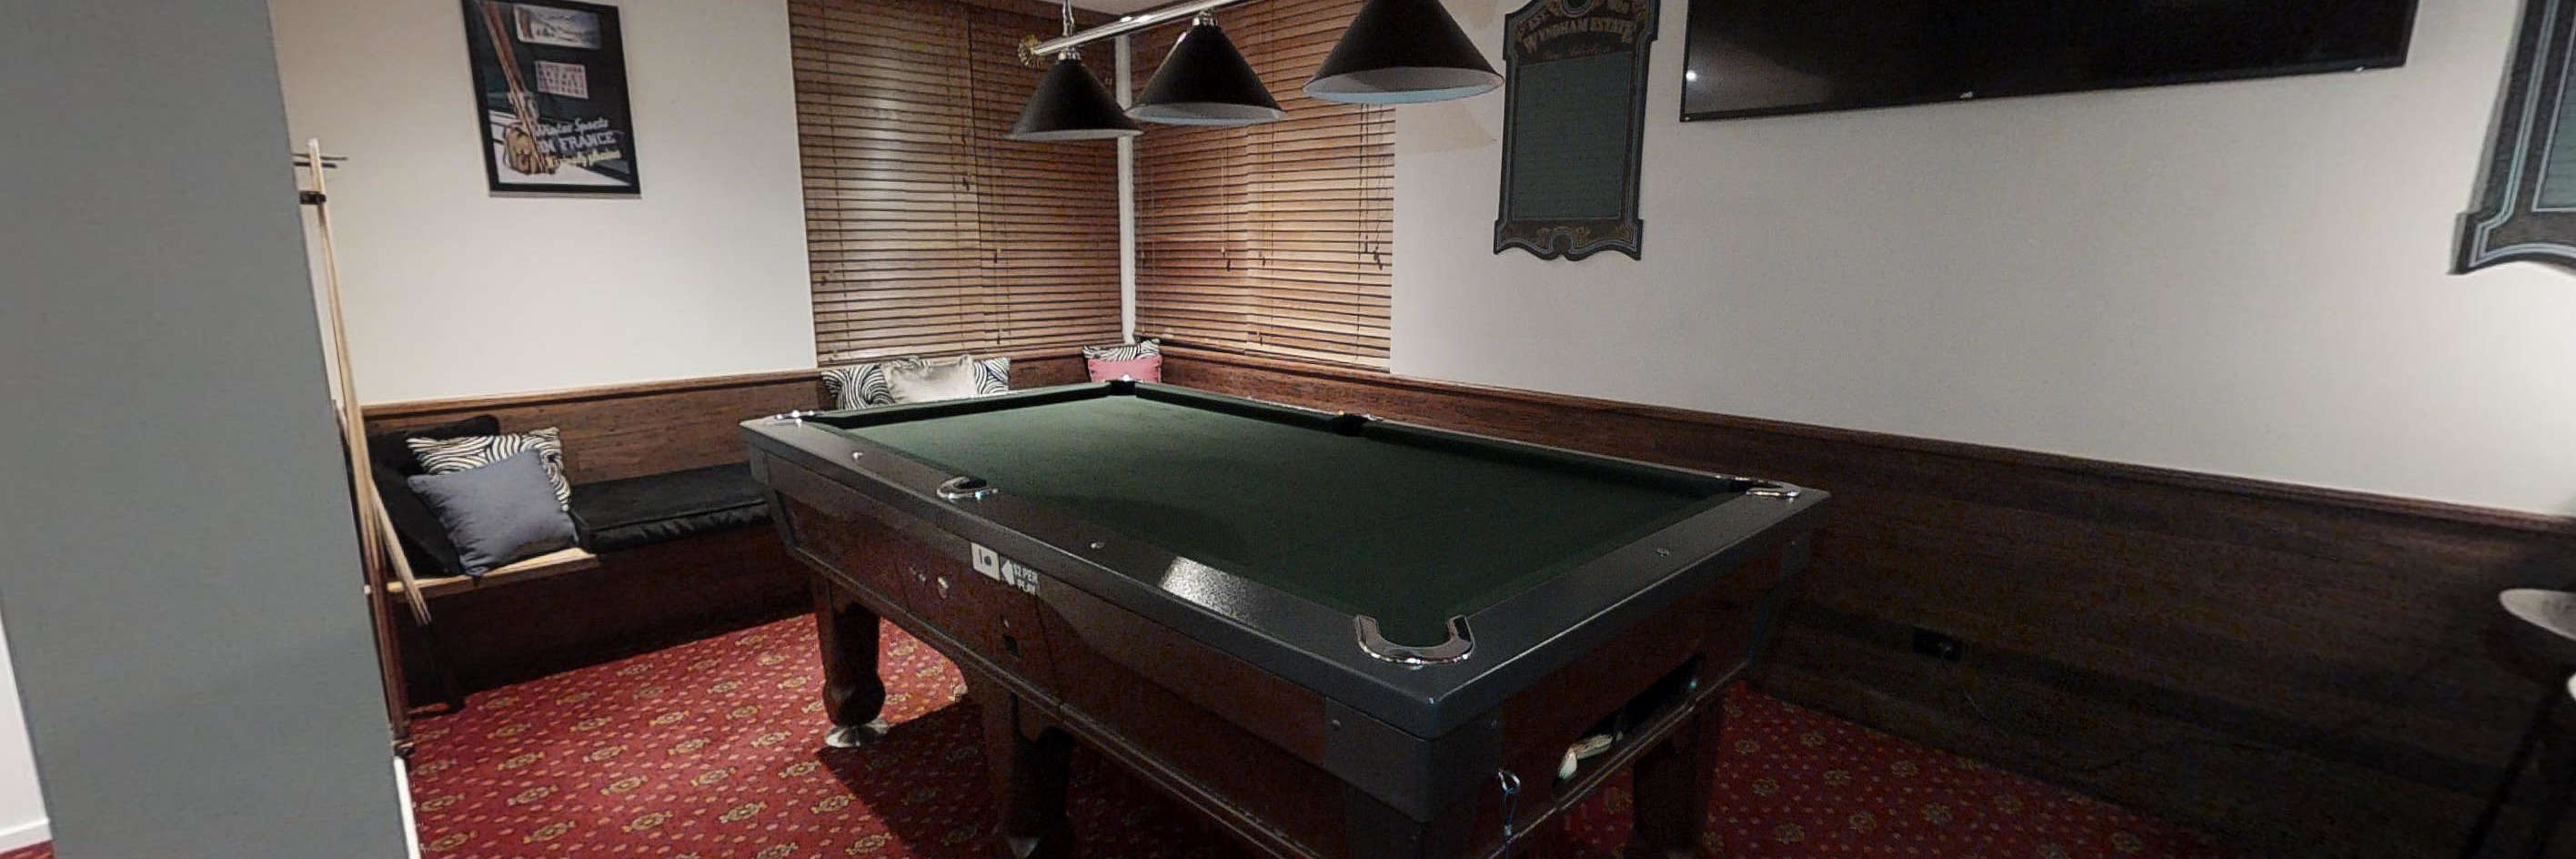 The Stables bar with pool table area